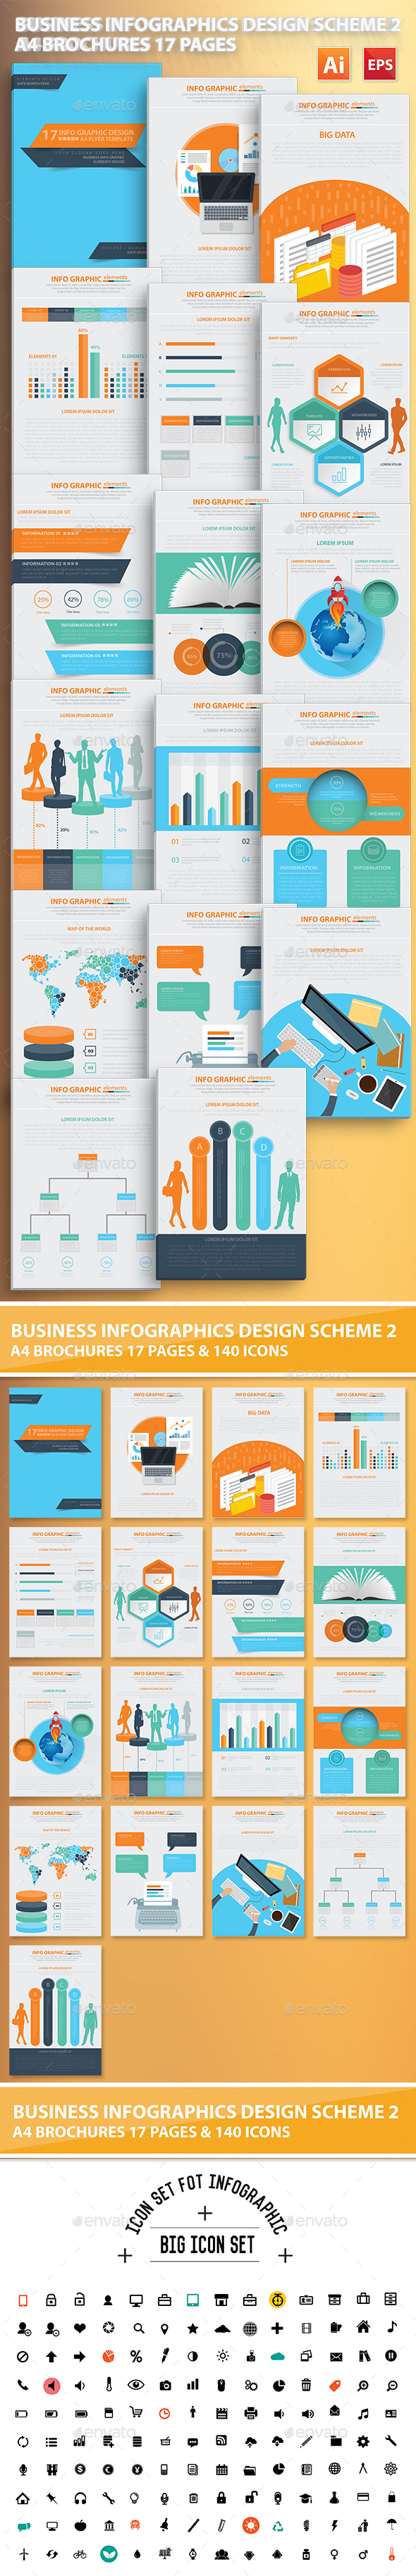 Business Infographic Elements Design Scheme 2 - Infographics